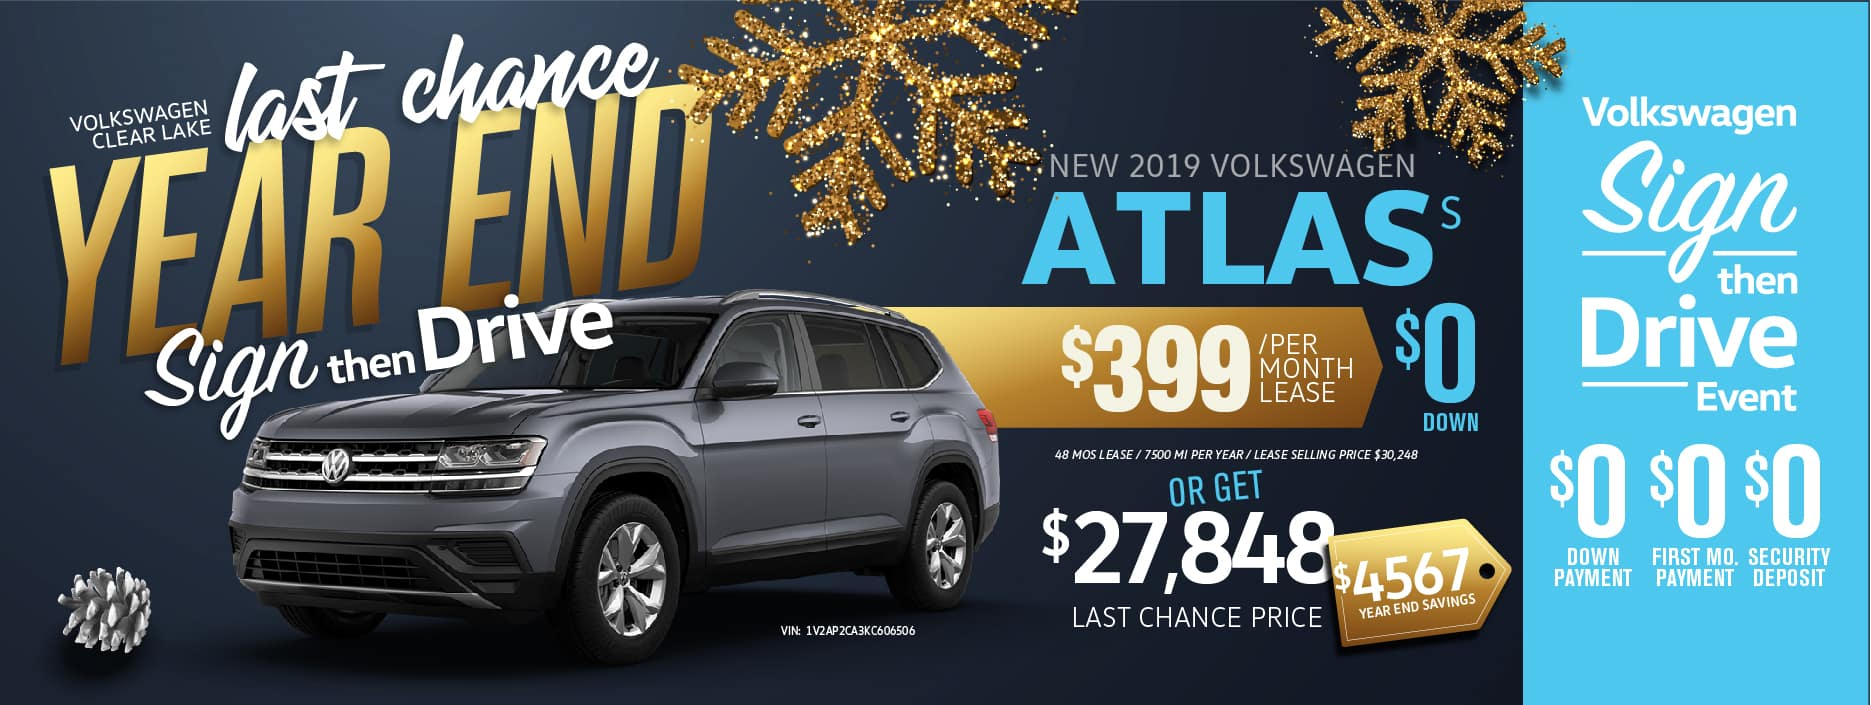 Don't miss our Last Chance Year End Sign Then Drive Sale!